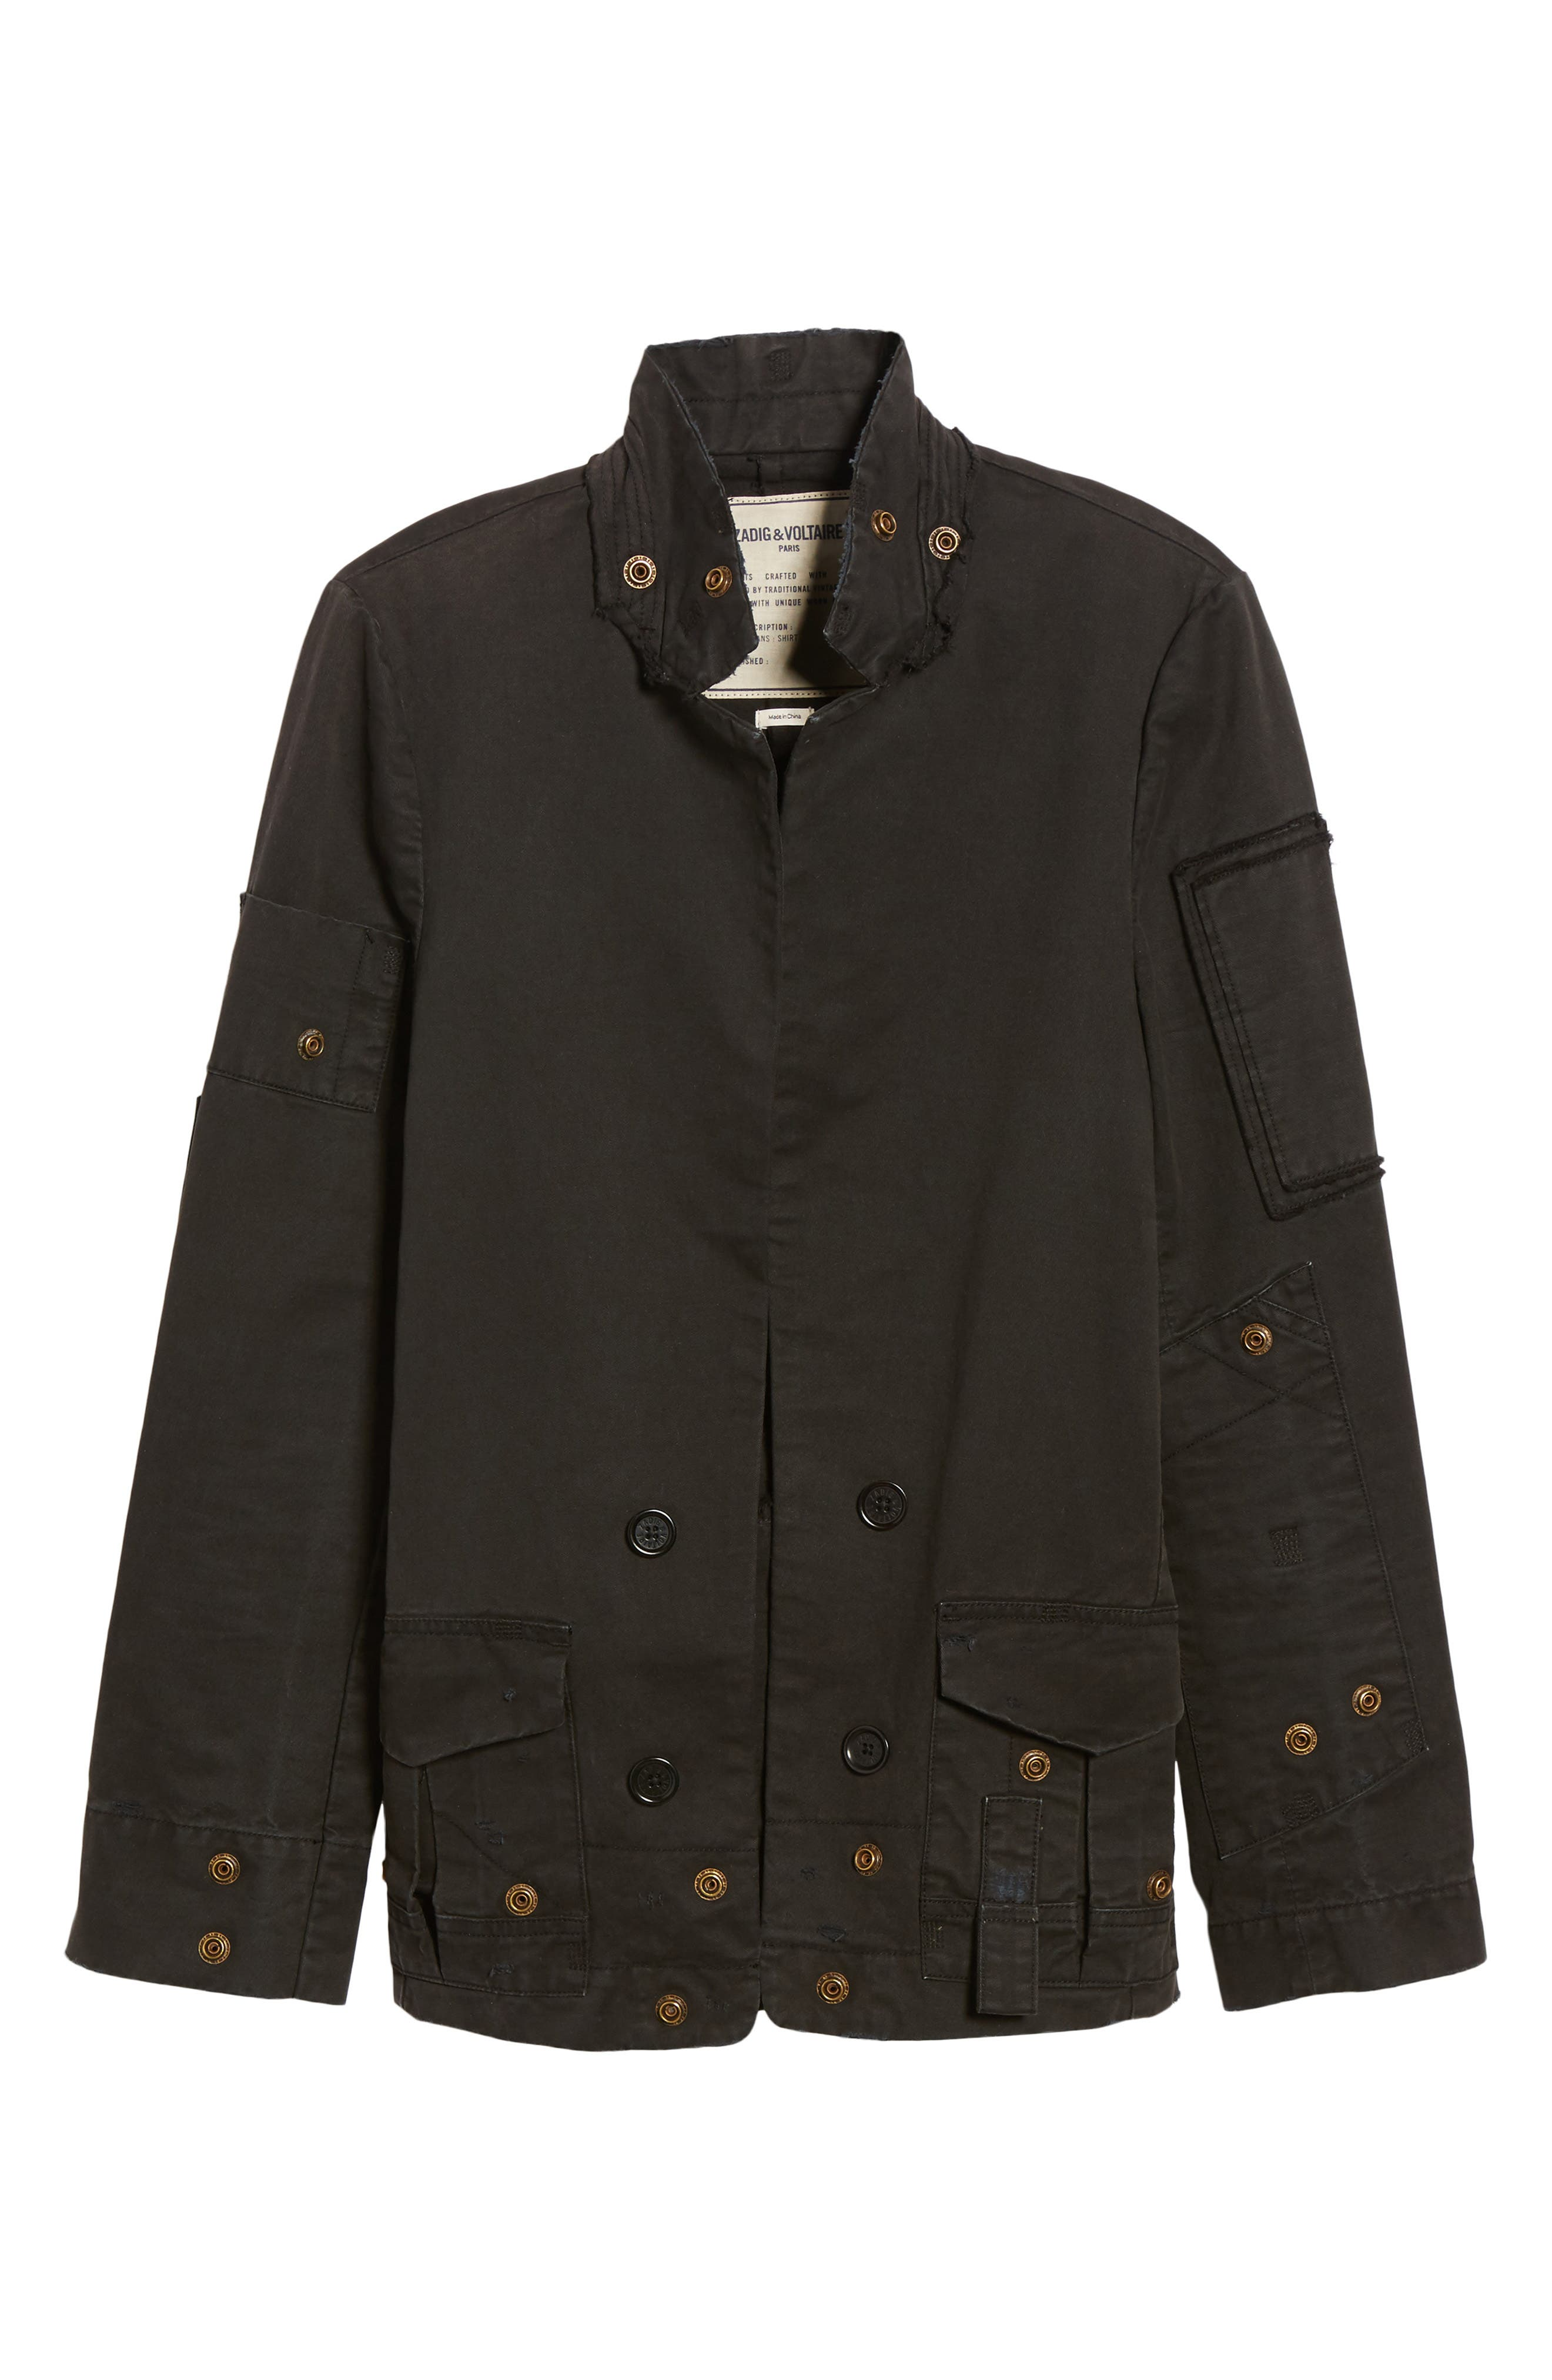 Vladimir Grunge Jacket,                             Alternate thumbnail 6, color,                             Black